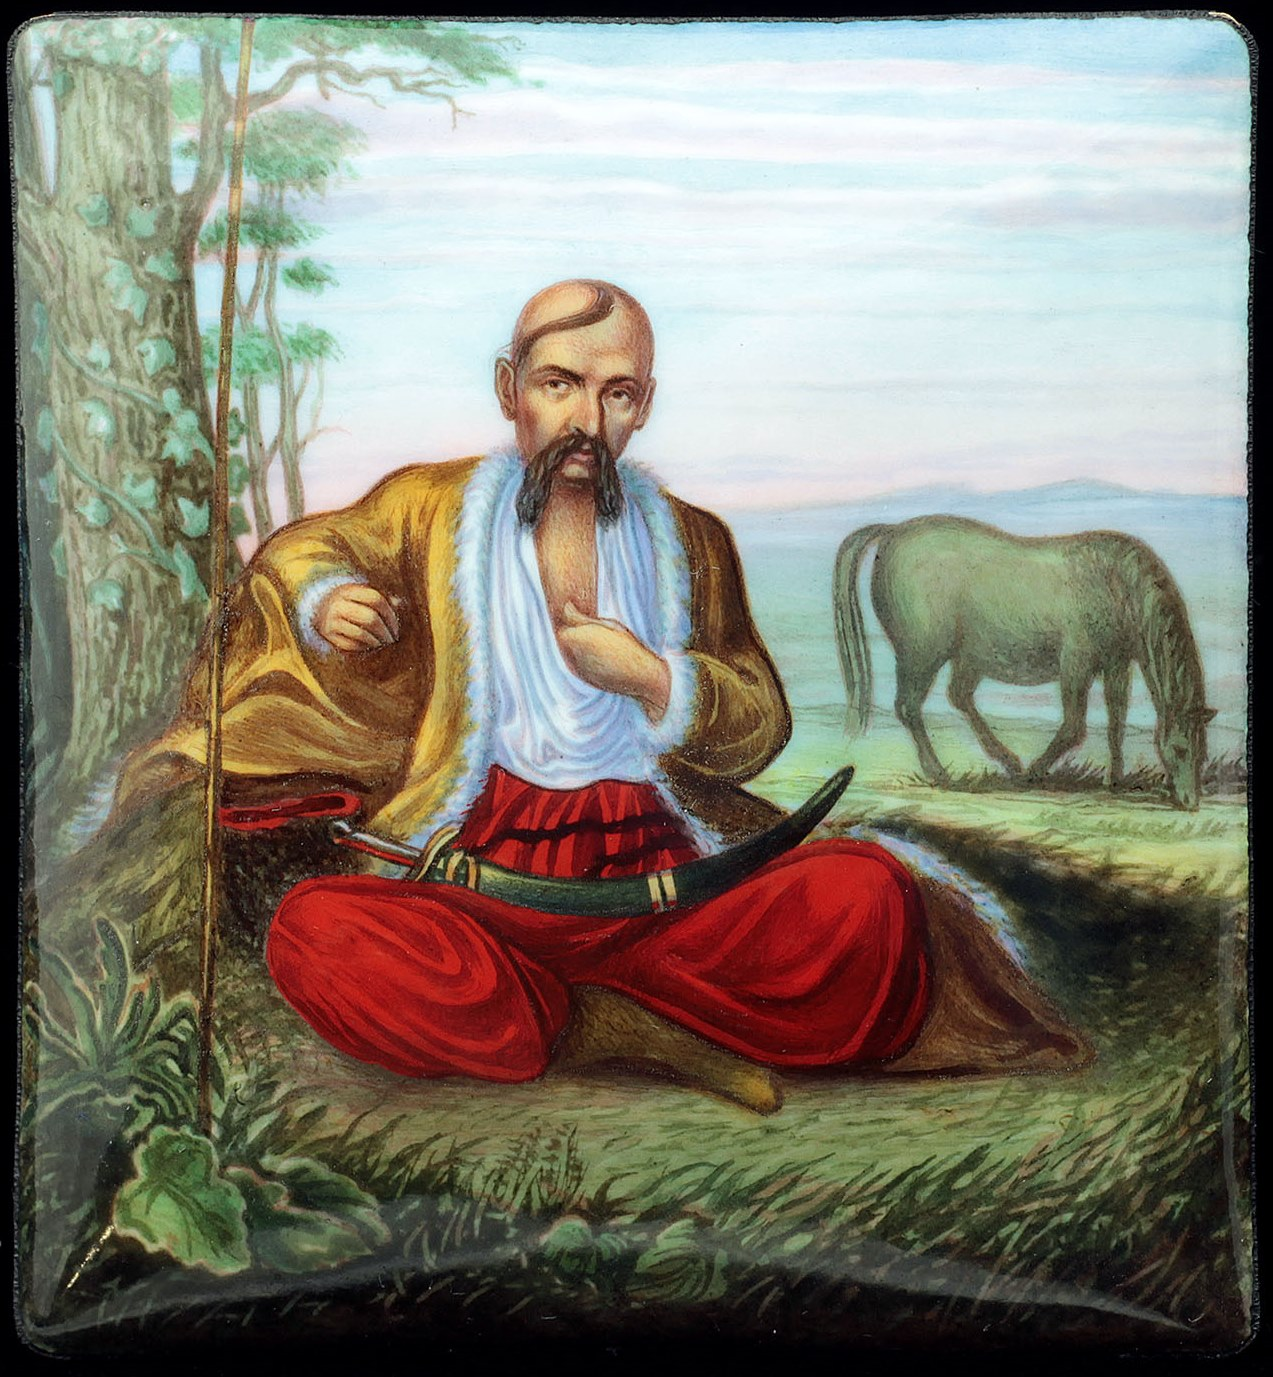 'Zaporizhzhia Cossack' after uknown painter from 19th century